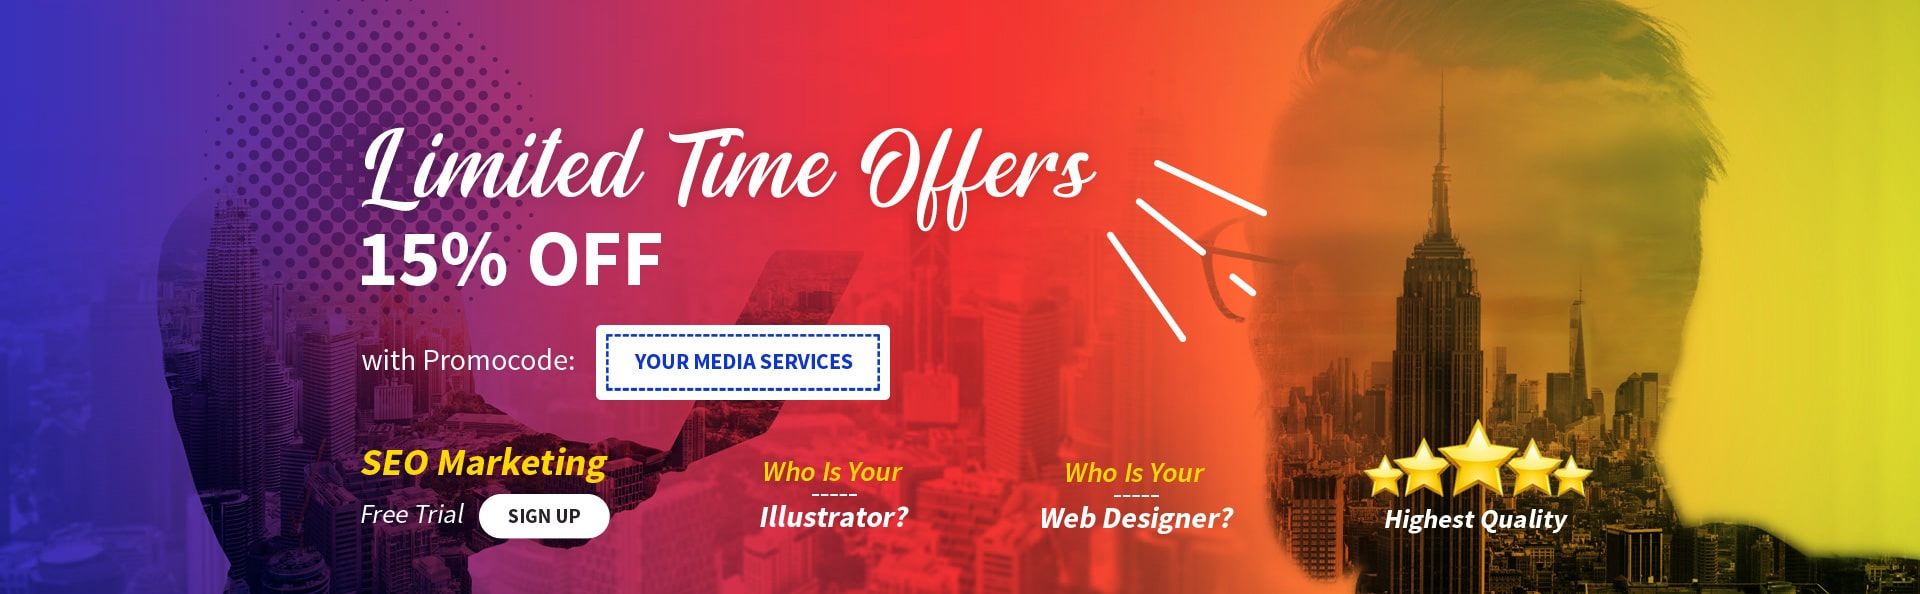 Your Media Services Digital Marketing Services SEO Marketing Homepage Banner